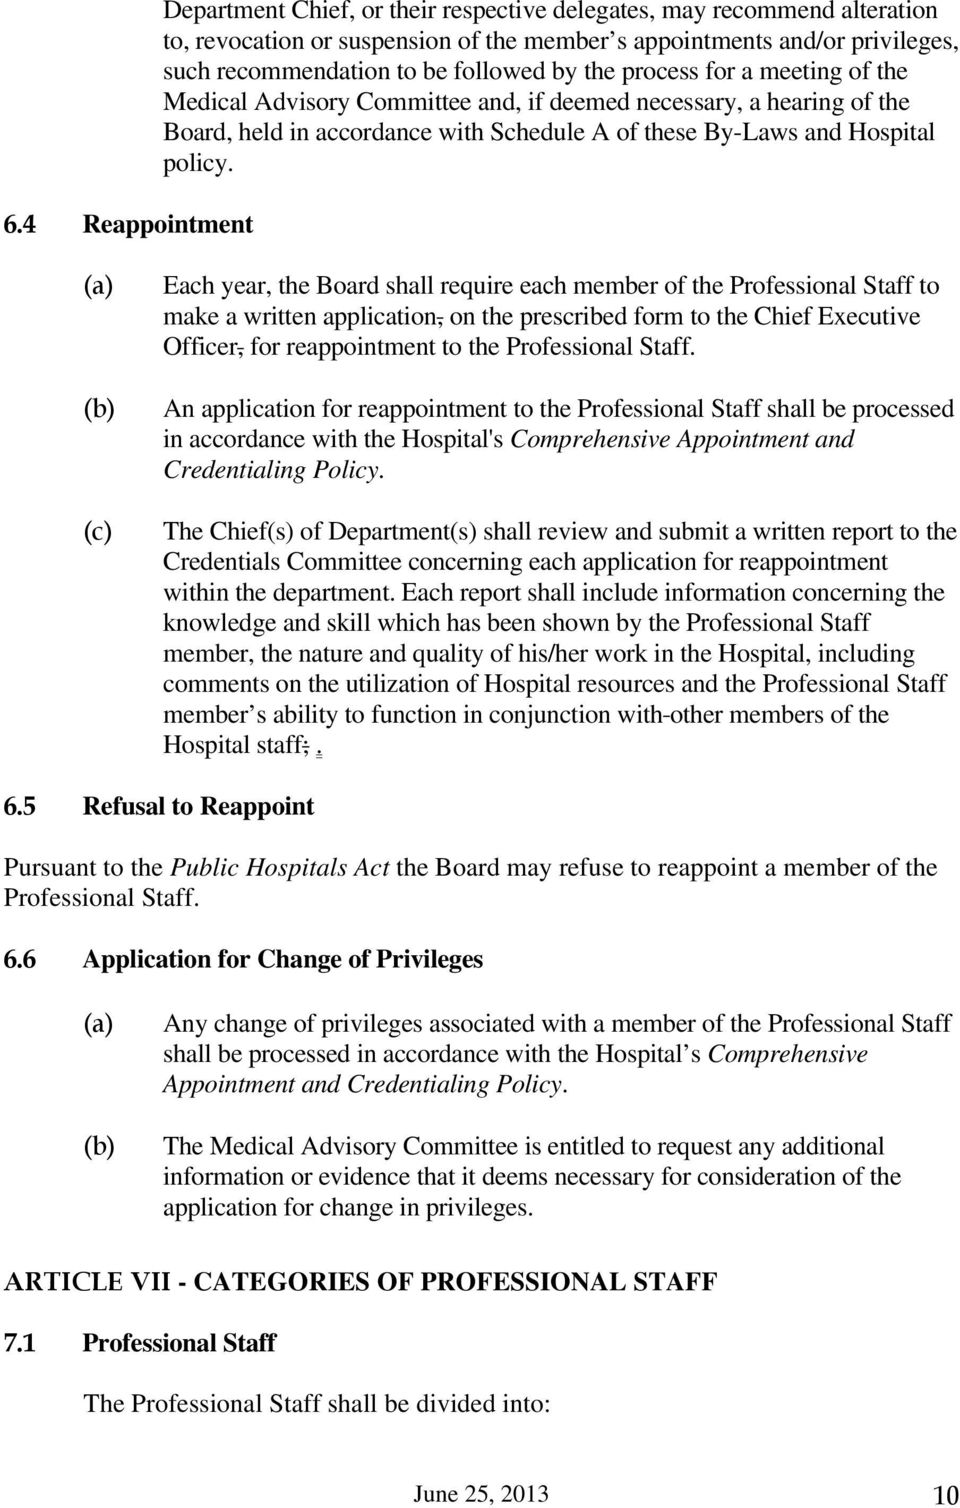 Each year, the Board shall require each member of the Professional Staff to make a written application, on the prescribed form to the Chief Executive Officer, for reappointment to the Professional